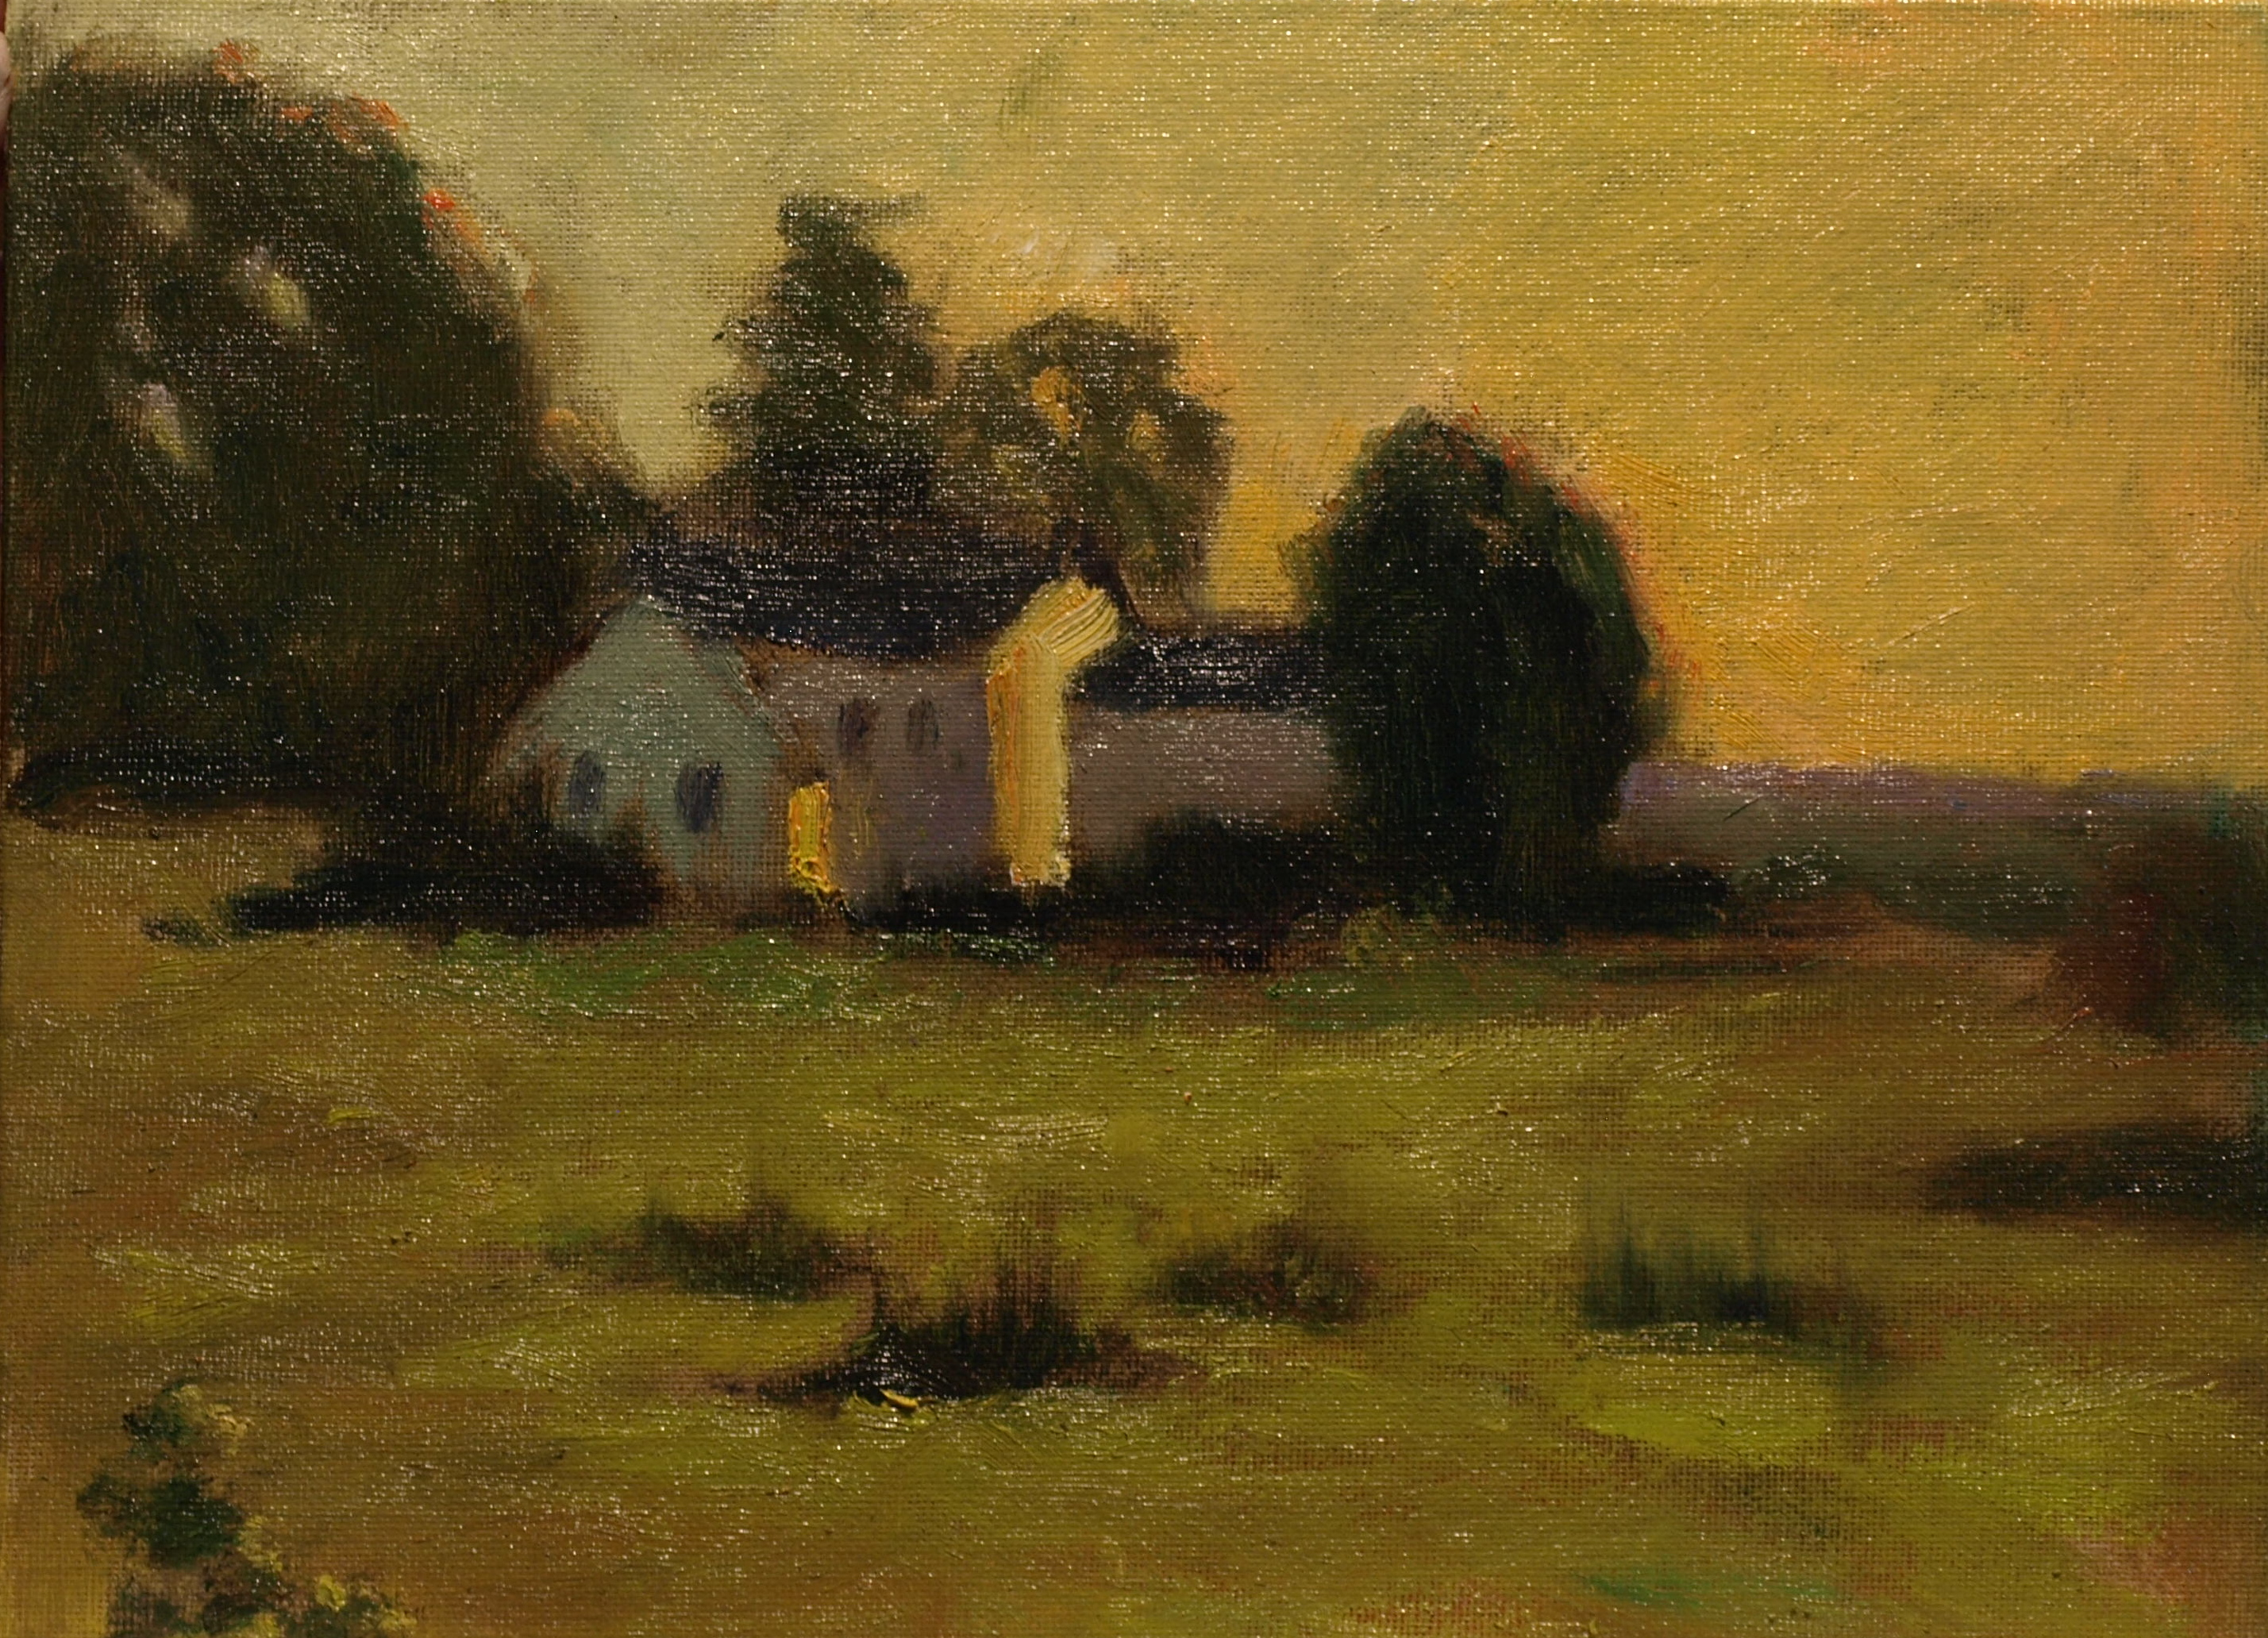 Evening Glow, Oil on Canvas on Panel, 9 x 12 Inches, by Richard Stalter, $220